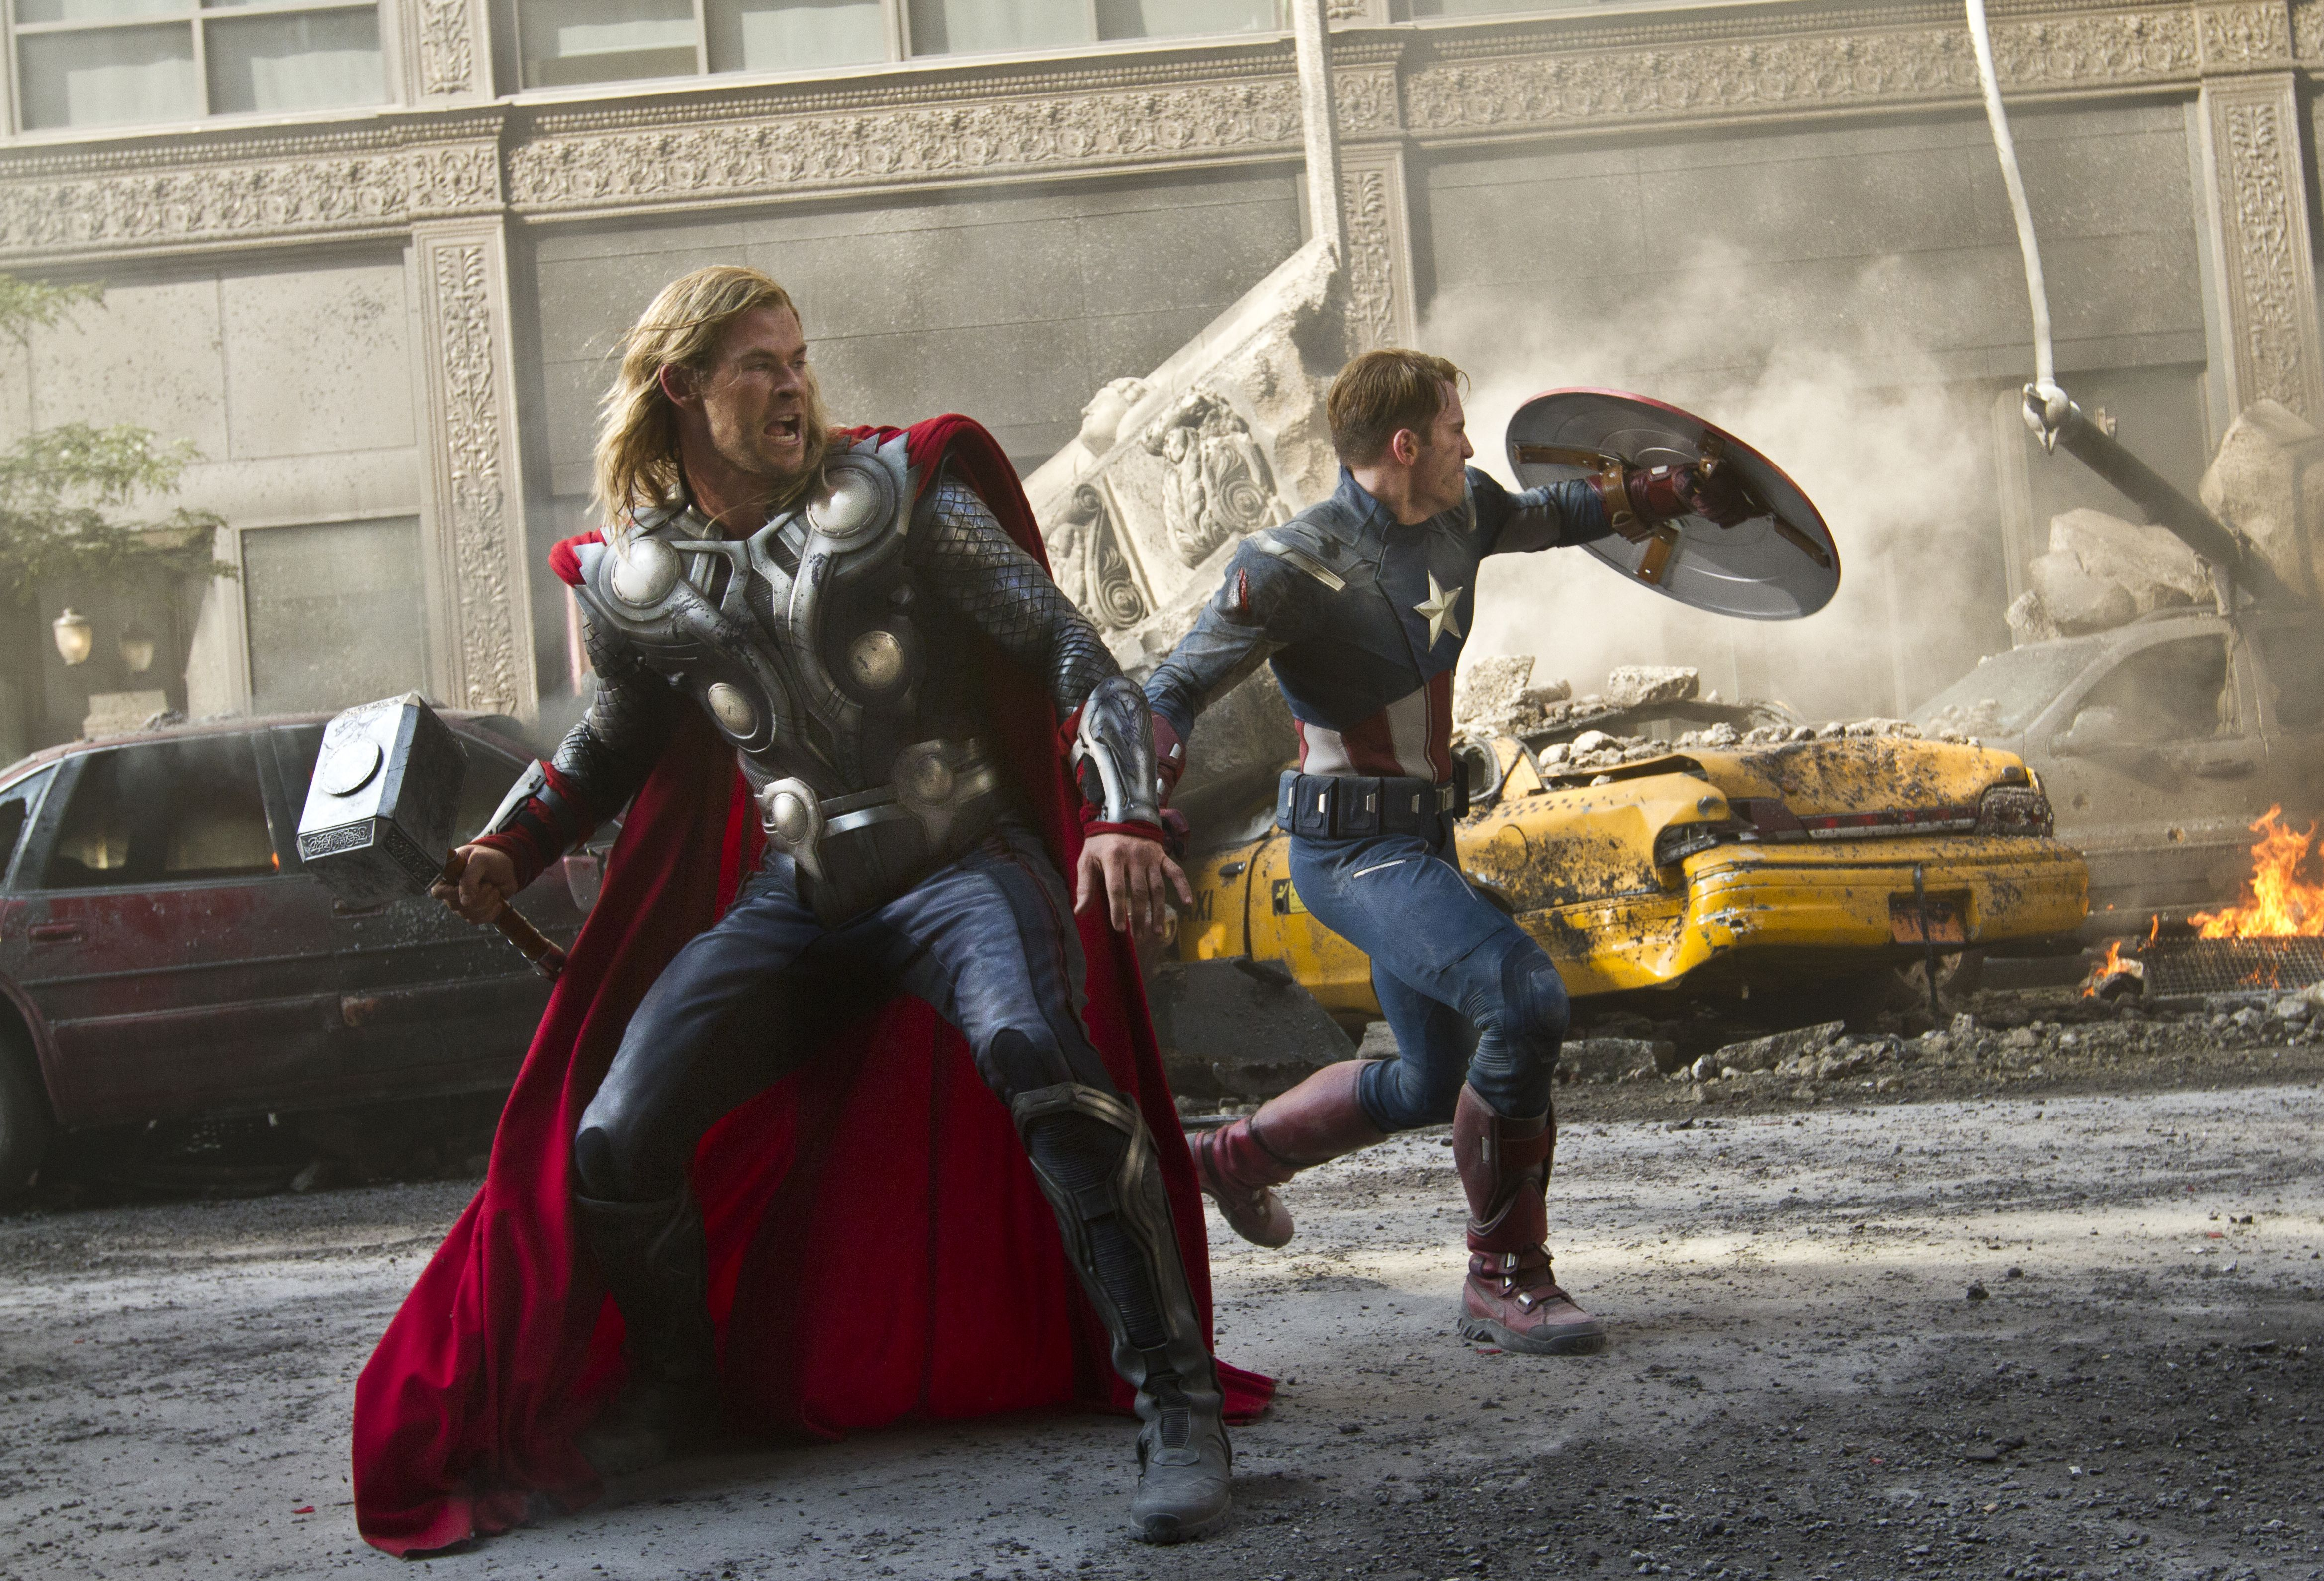 Big fight scene in The Avengers 1, Thor and Captain America